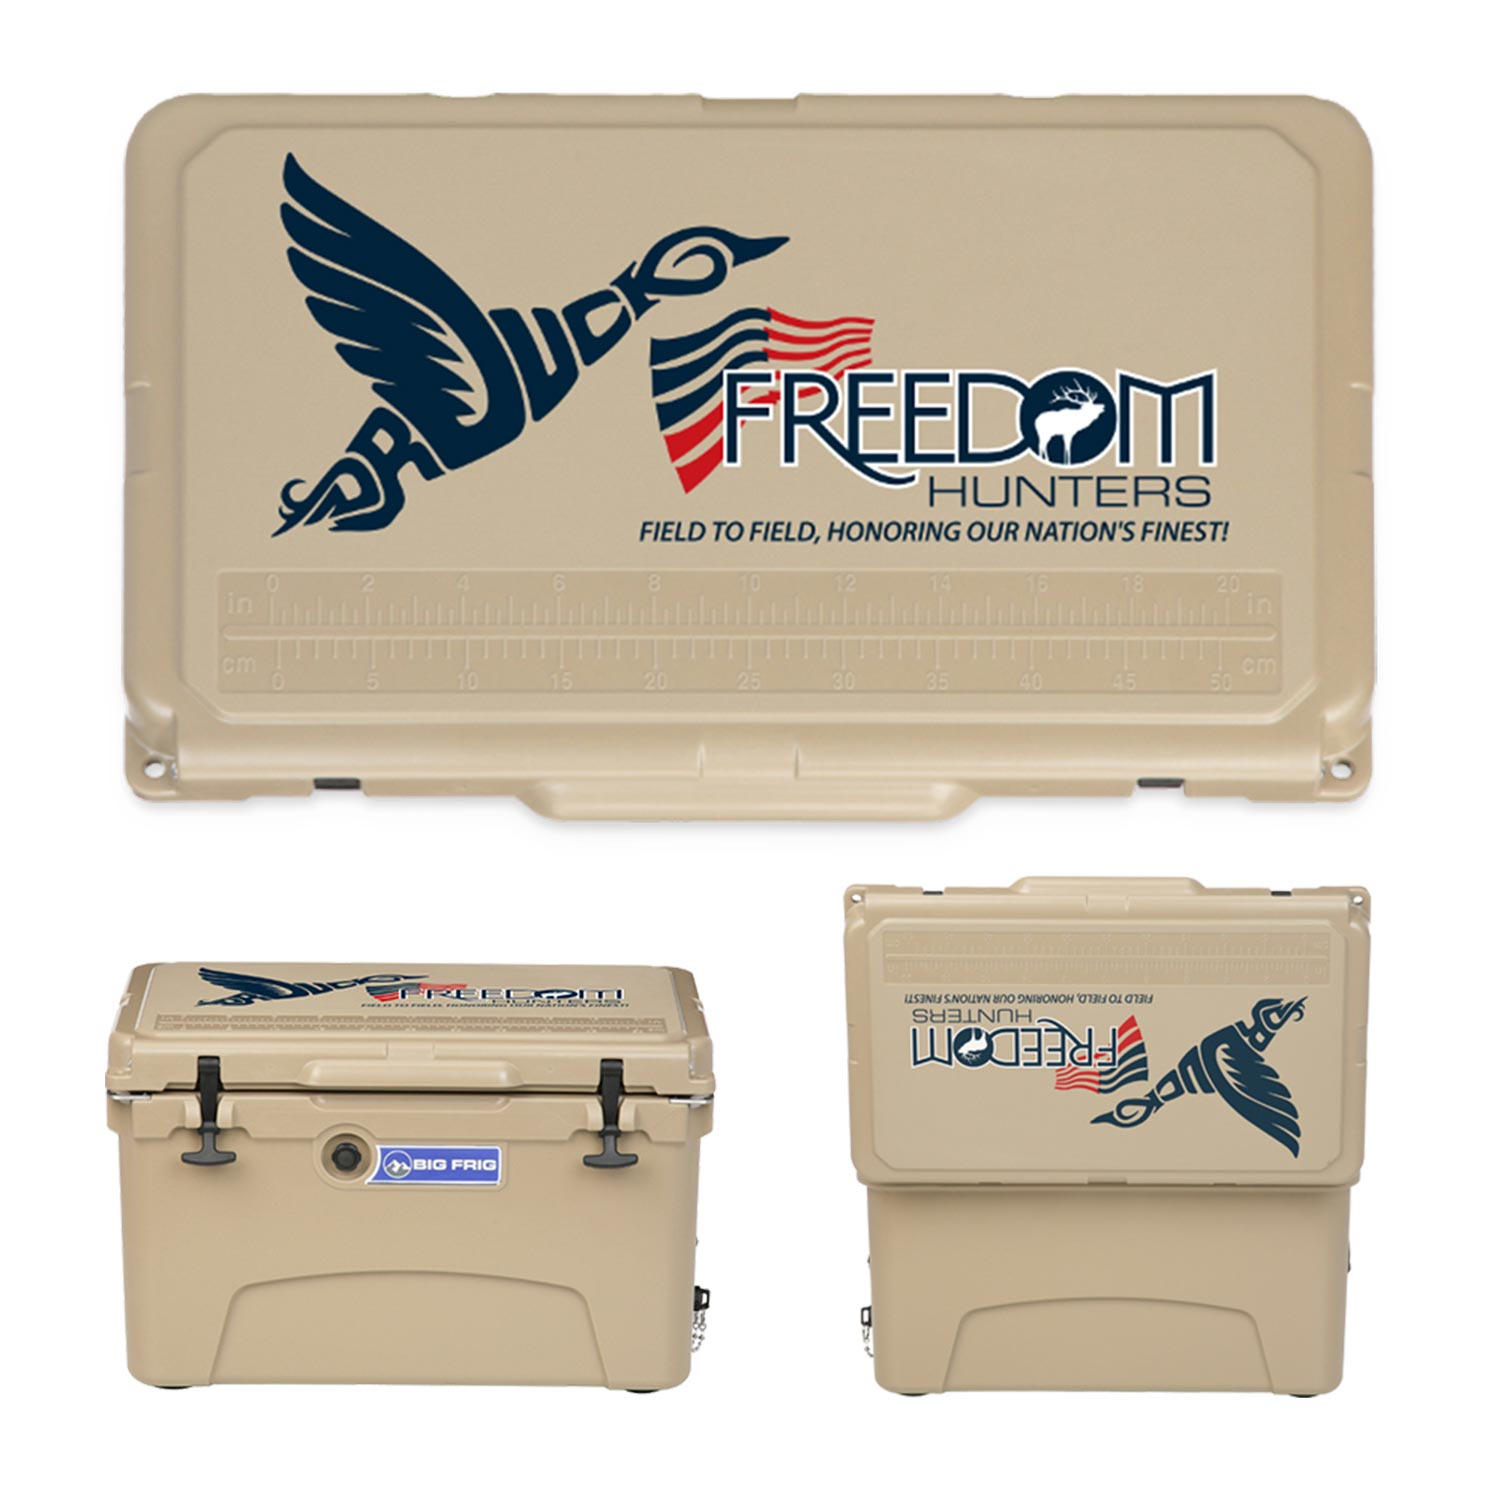 Big Frig and DR. DUCK: FREEDOM HUNTERS COOLERS